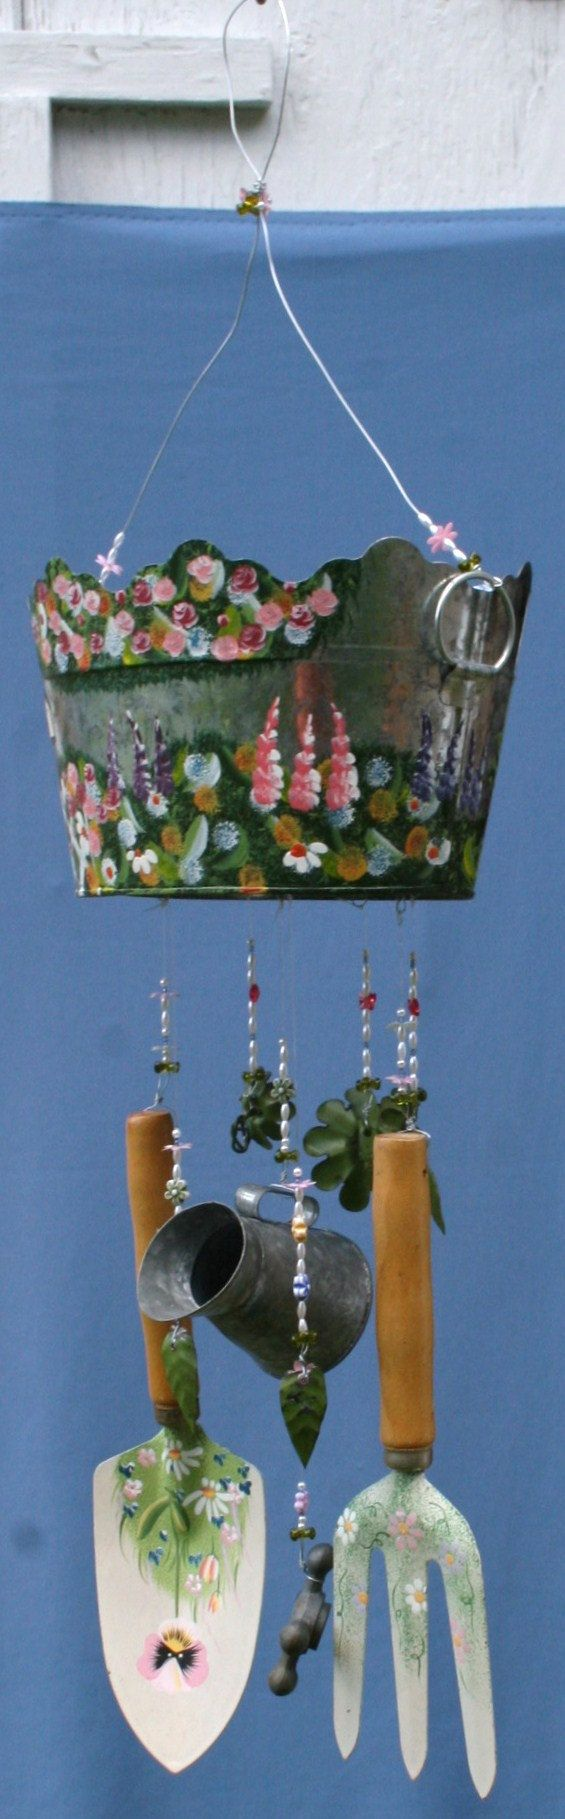 Amazing Modern Gardening Wind Chime Flower Garden Hand Painted Pot w/ Tools Musical Beaded Beautiful Sound & Theme